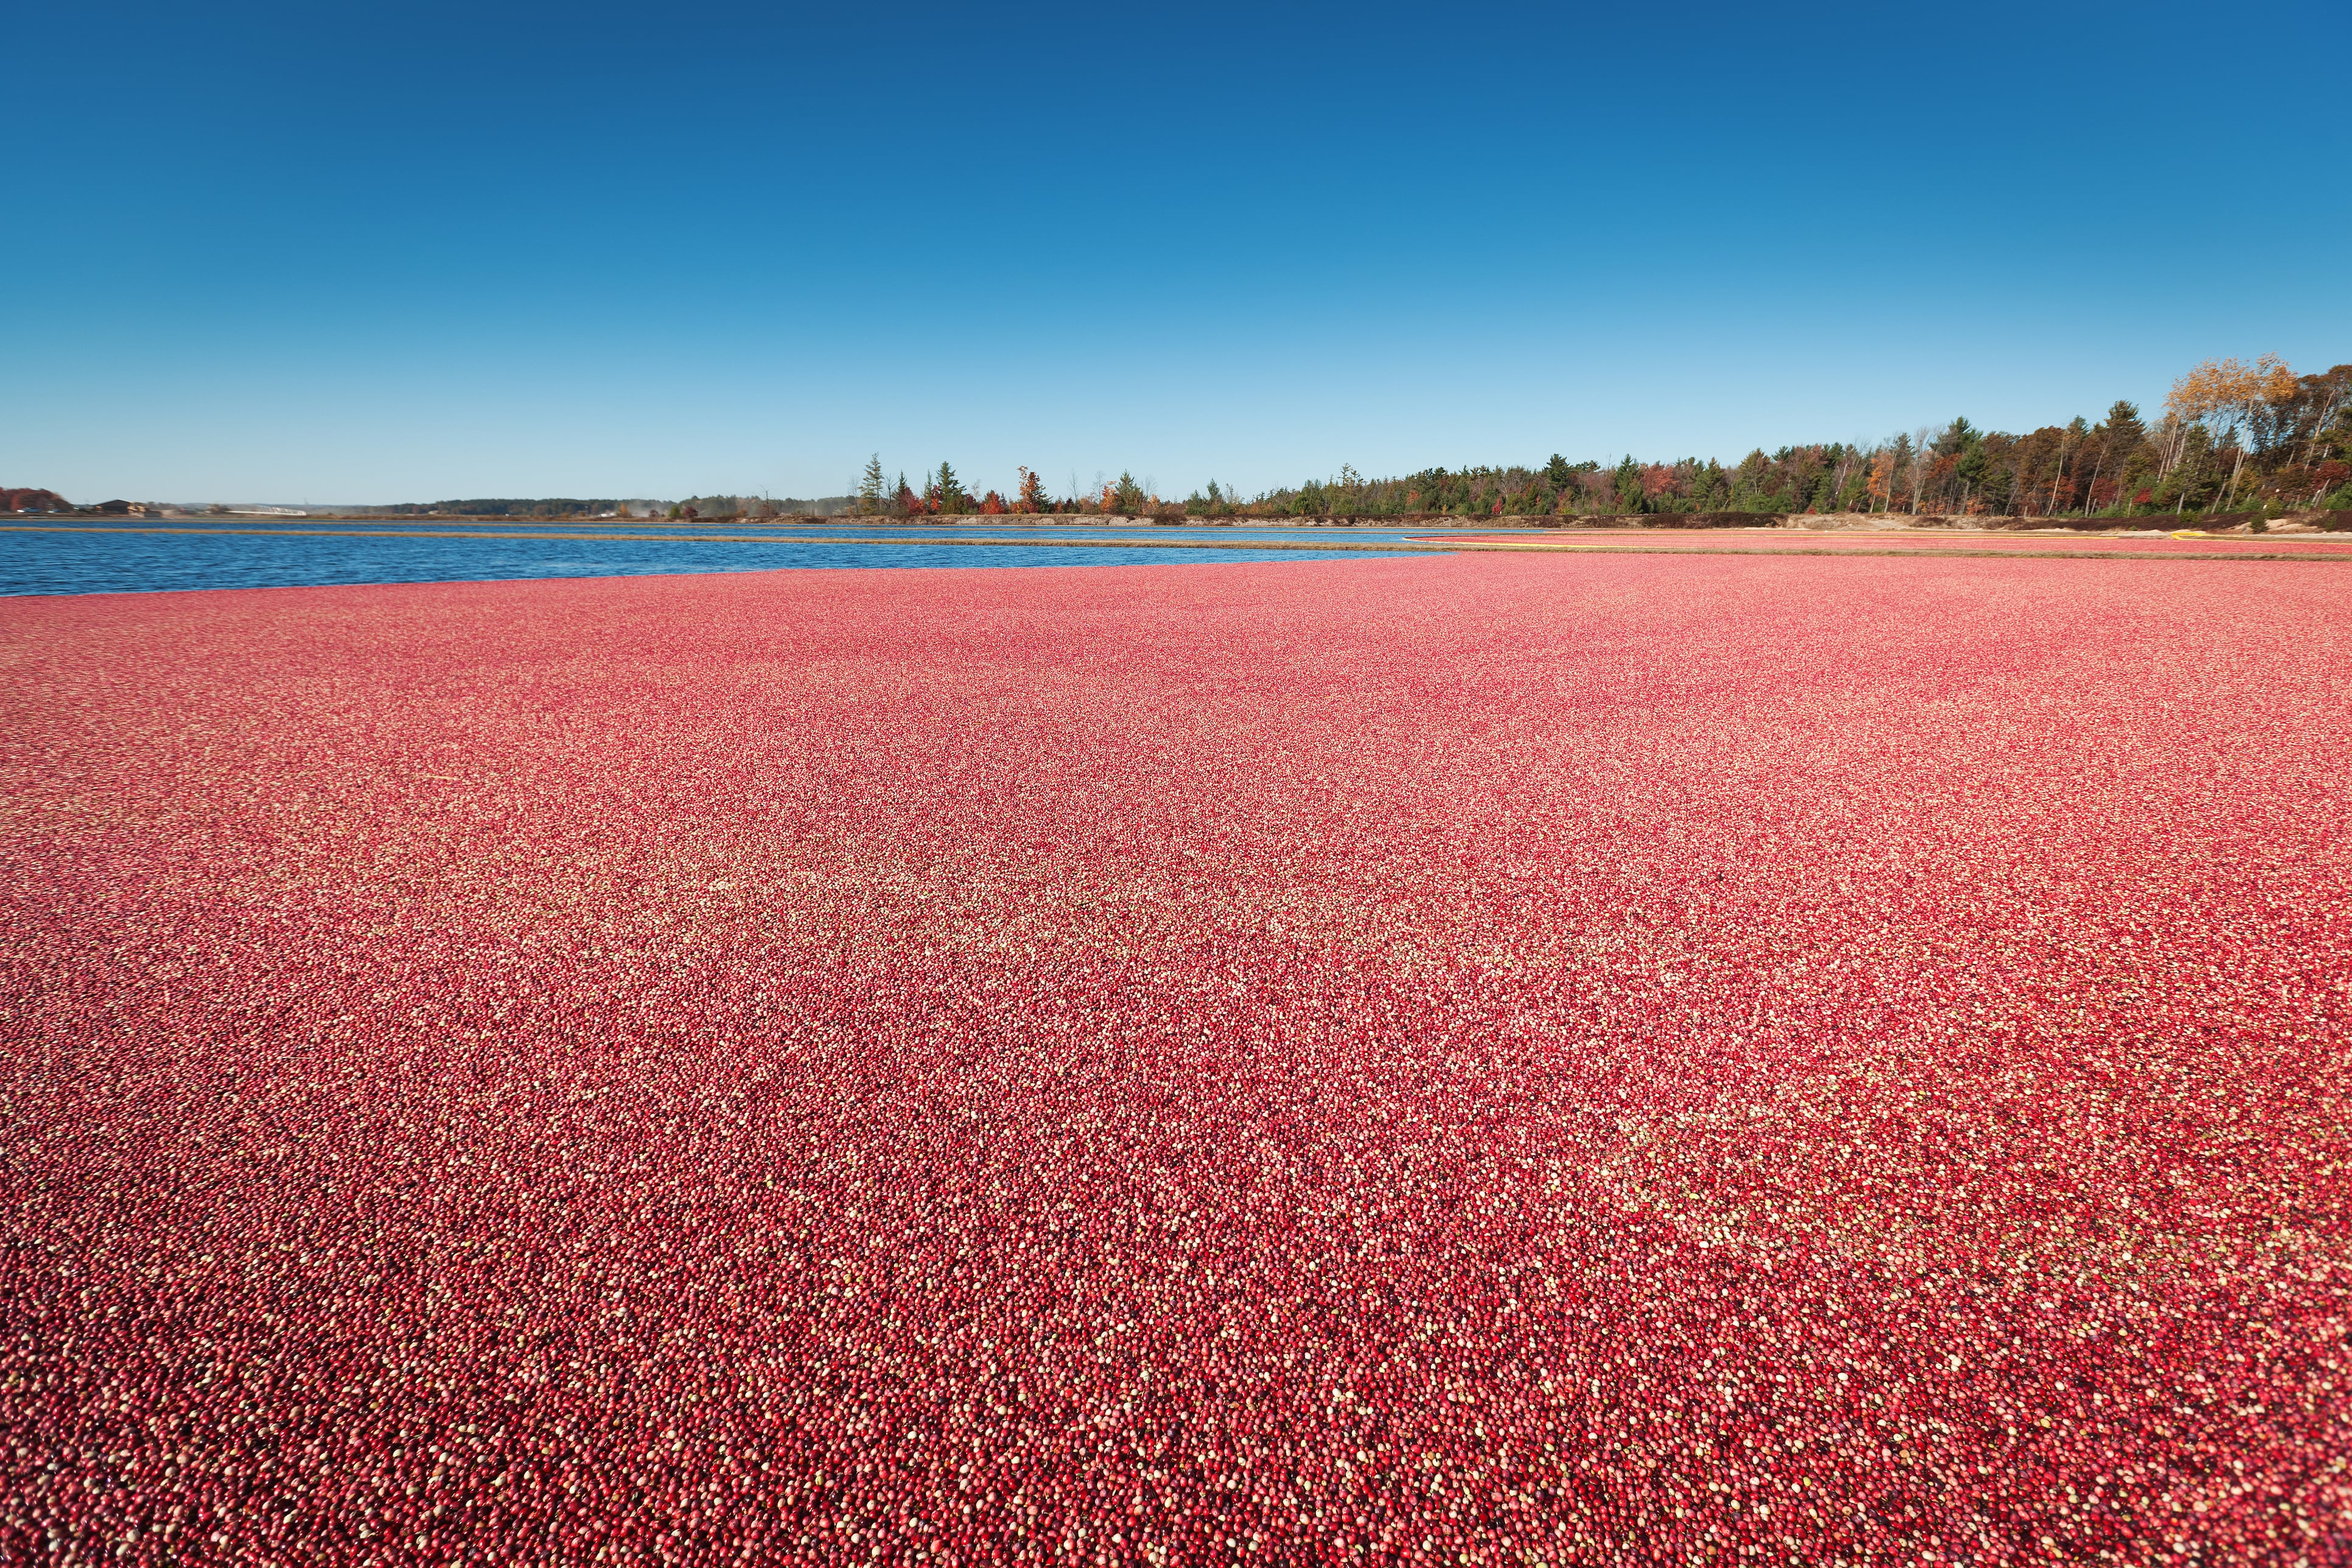 Marsh of cranberries